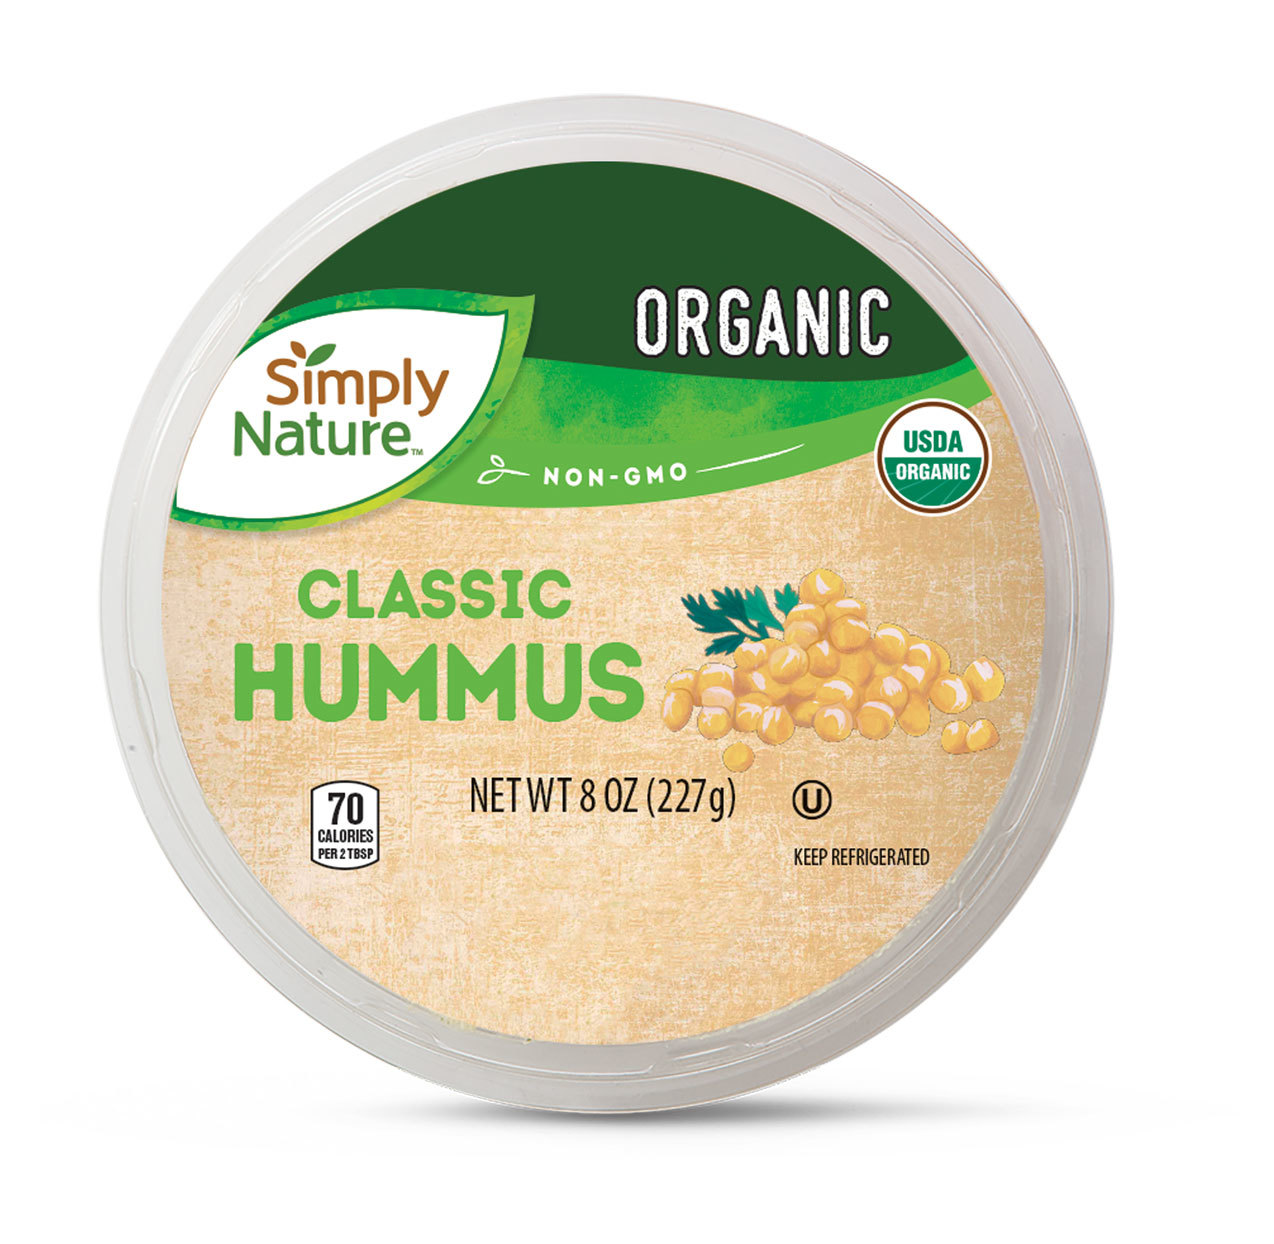 Simply Nature brand Organic packaged Hummus